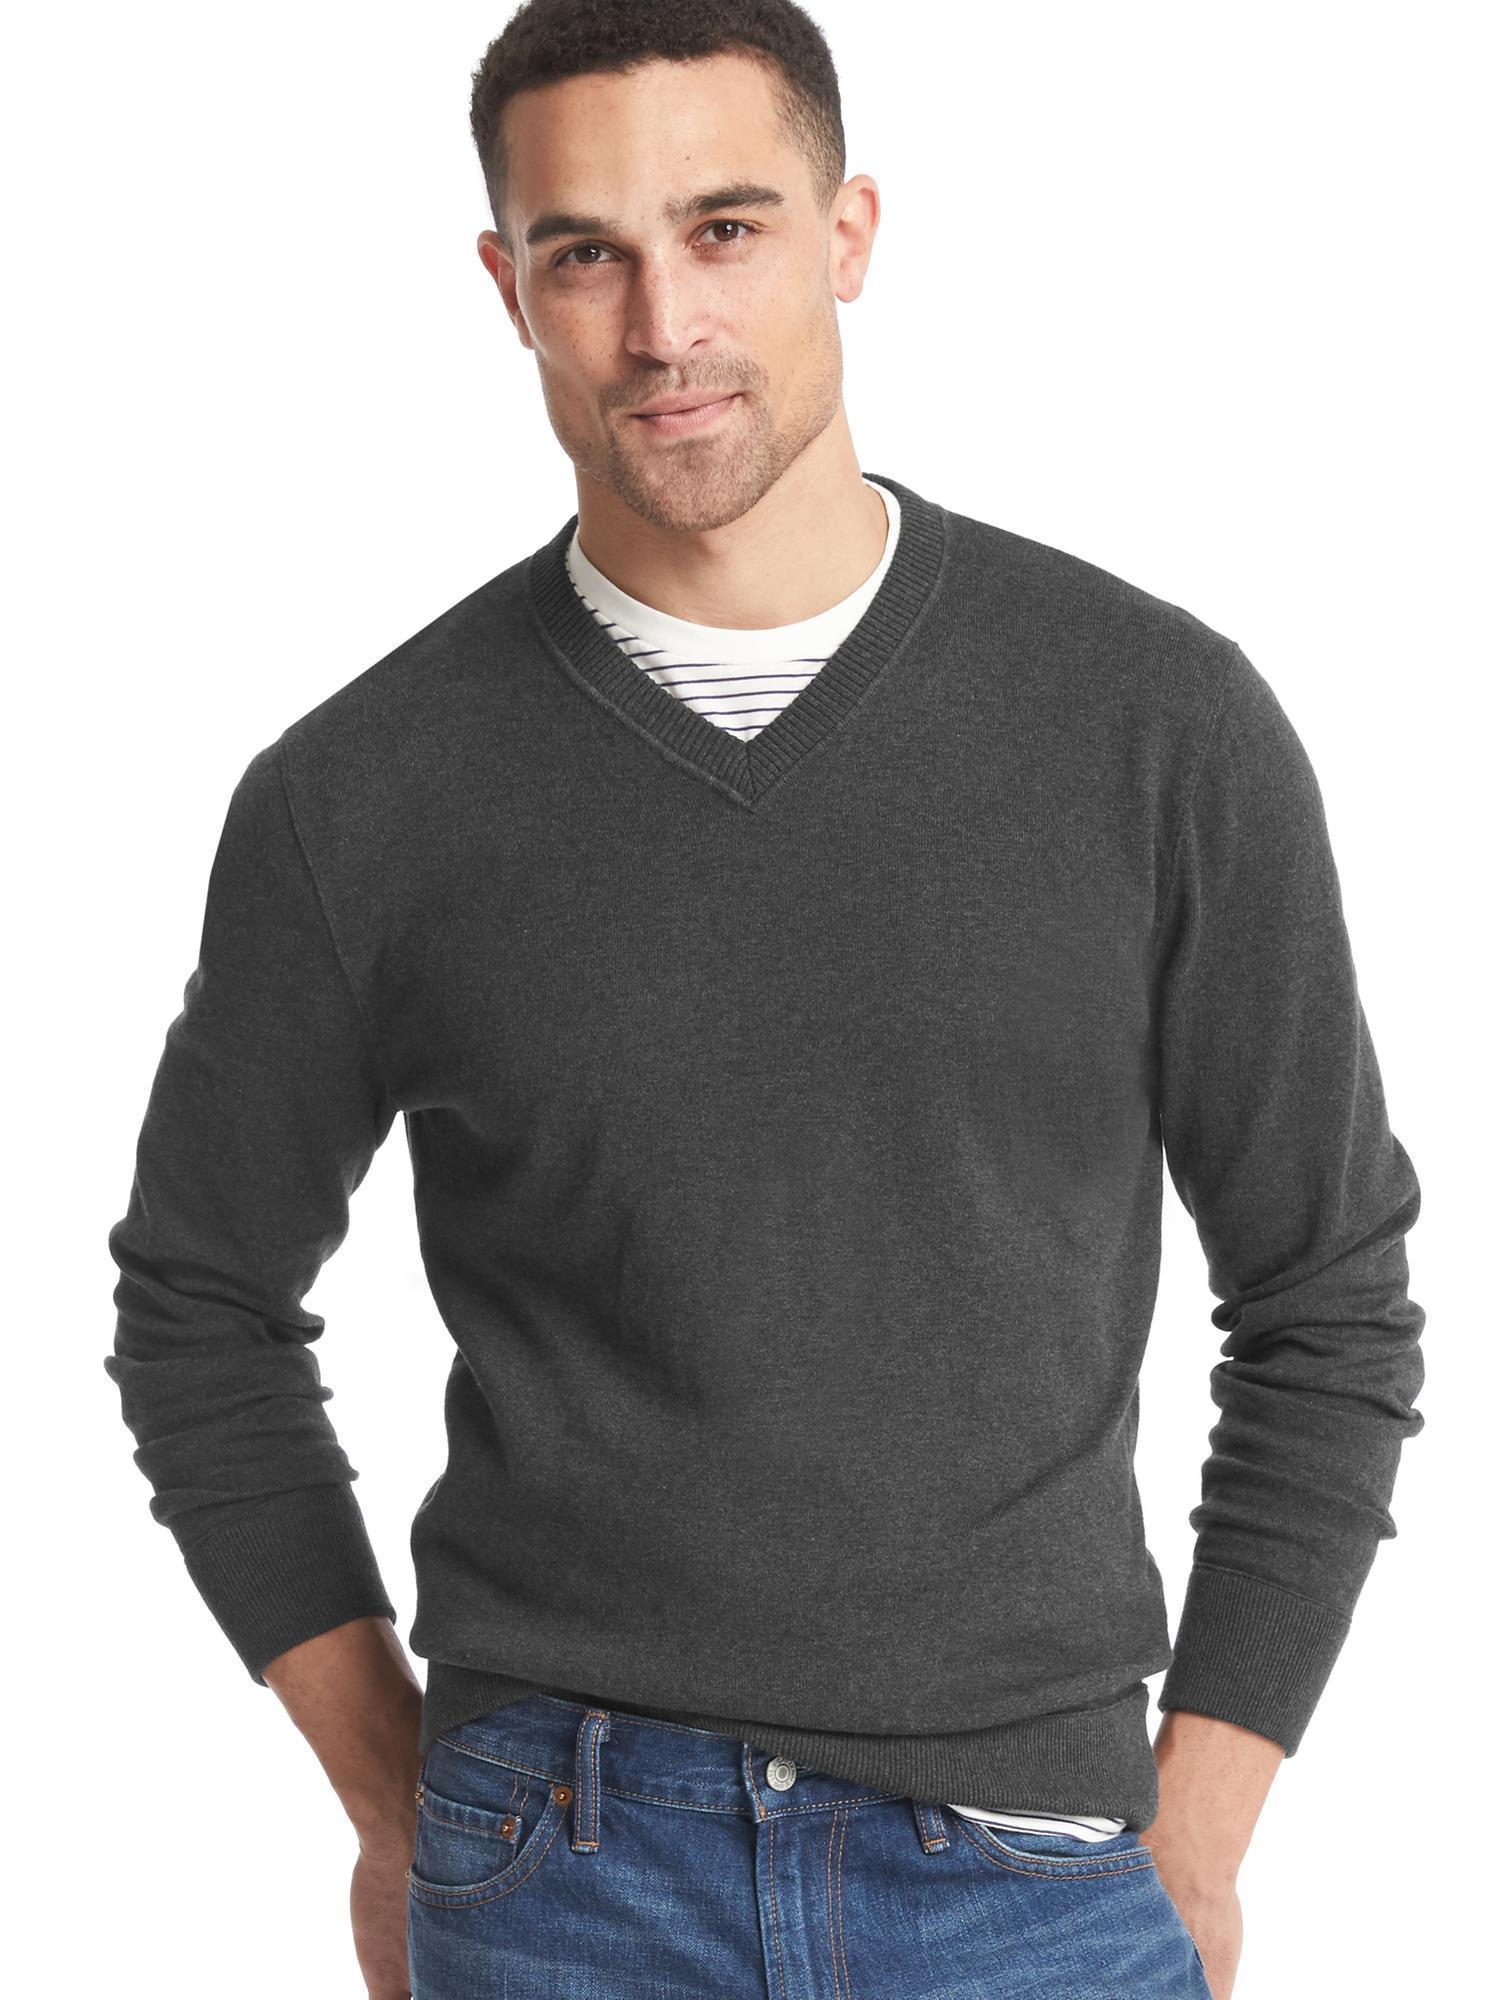 Black t shirt navy jeans - Try Pairing A Charcoal V Neck Sweater With Navy Jeans For A Sunday Lunch With